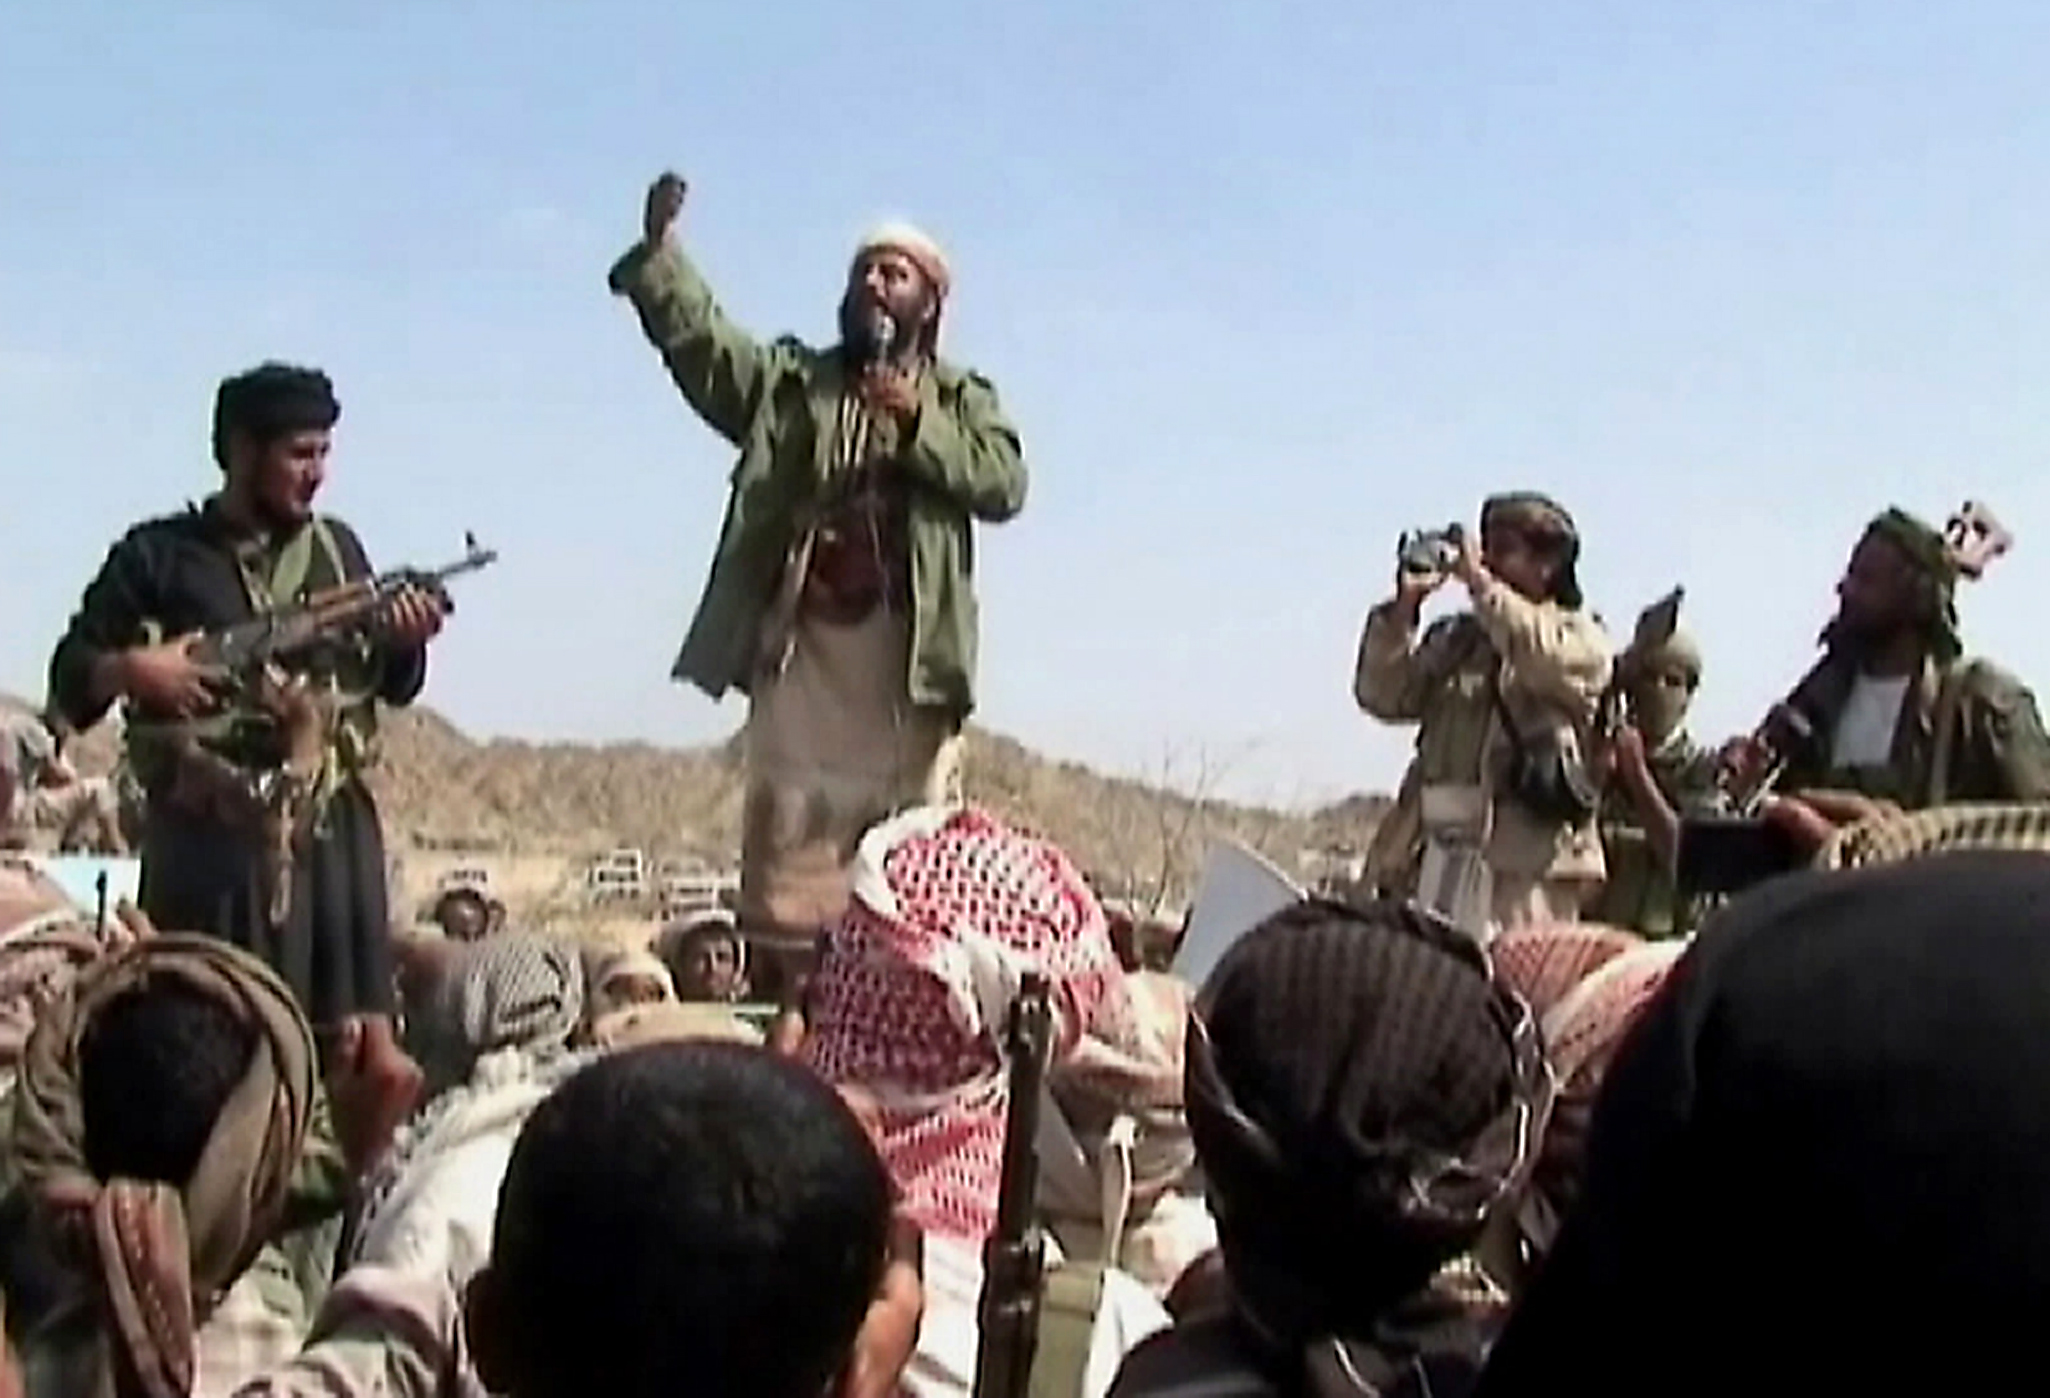 A man claiming to be an al-Qaida member addresses a crowd gathered in southern Yemen's Abyan Province on Dec. 22, 2009. (AFP/Getty Images)